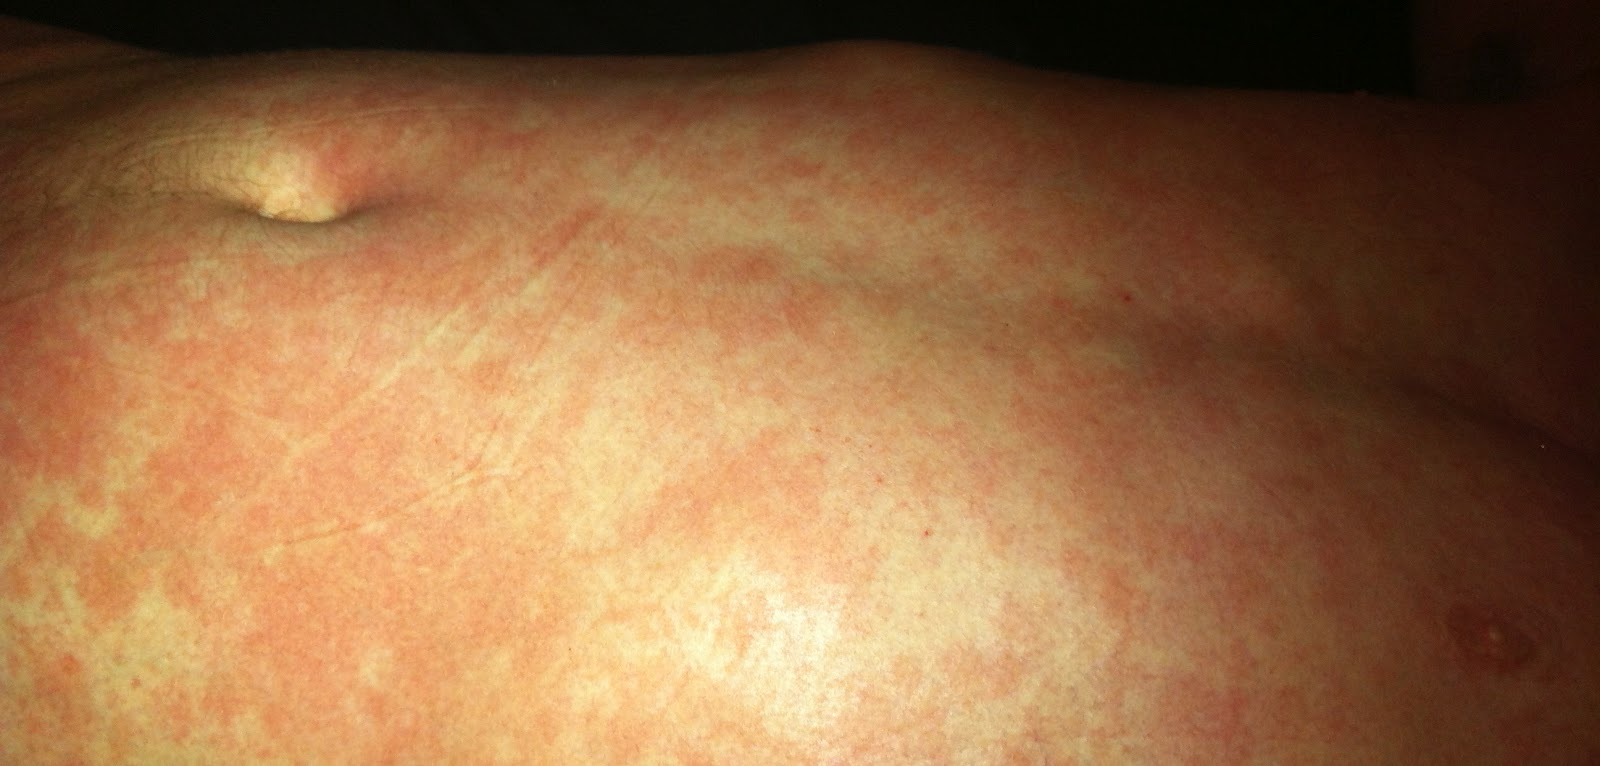 dermatology topical steroid potency